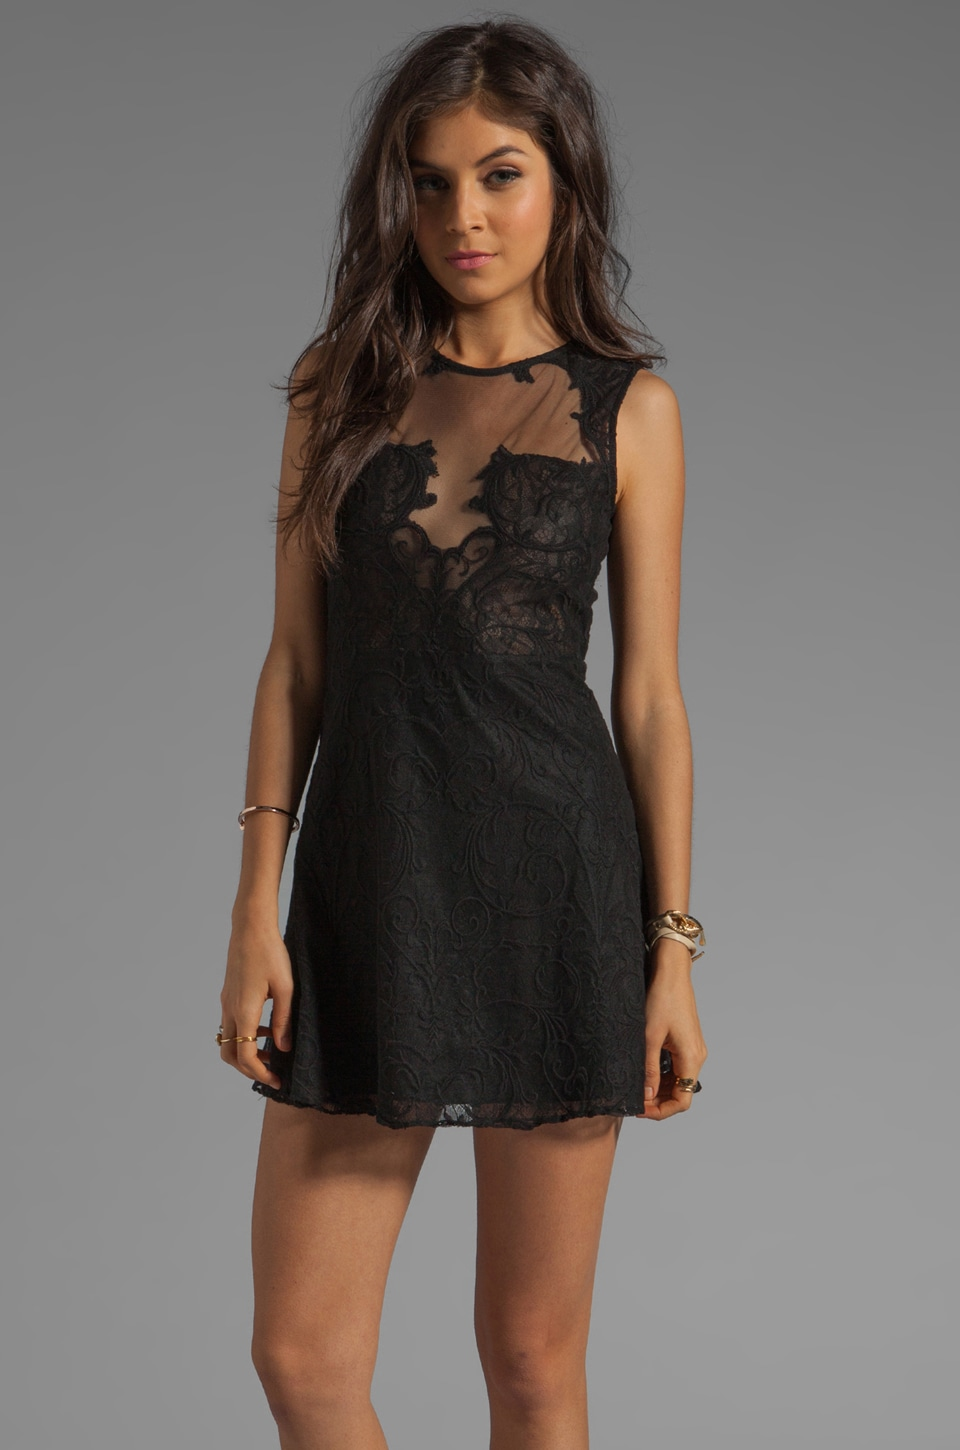 Shakuhachi Nouveau Mesh and Lace Flip Dress in Black